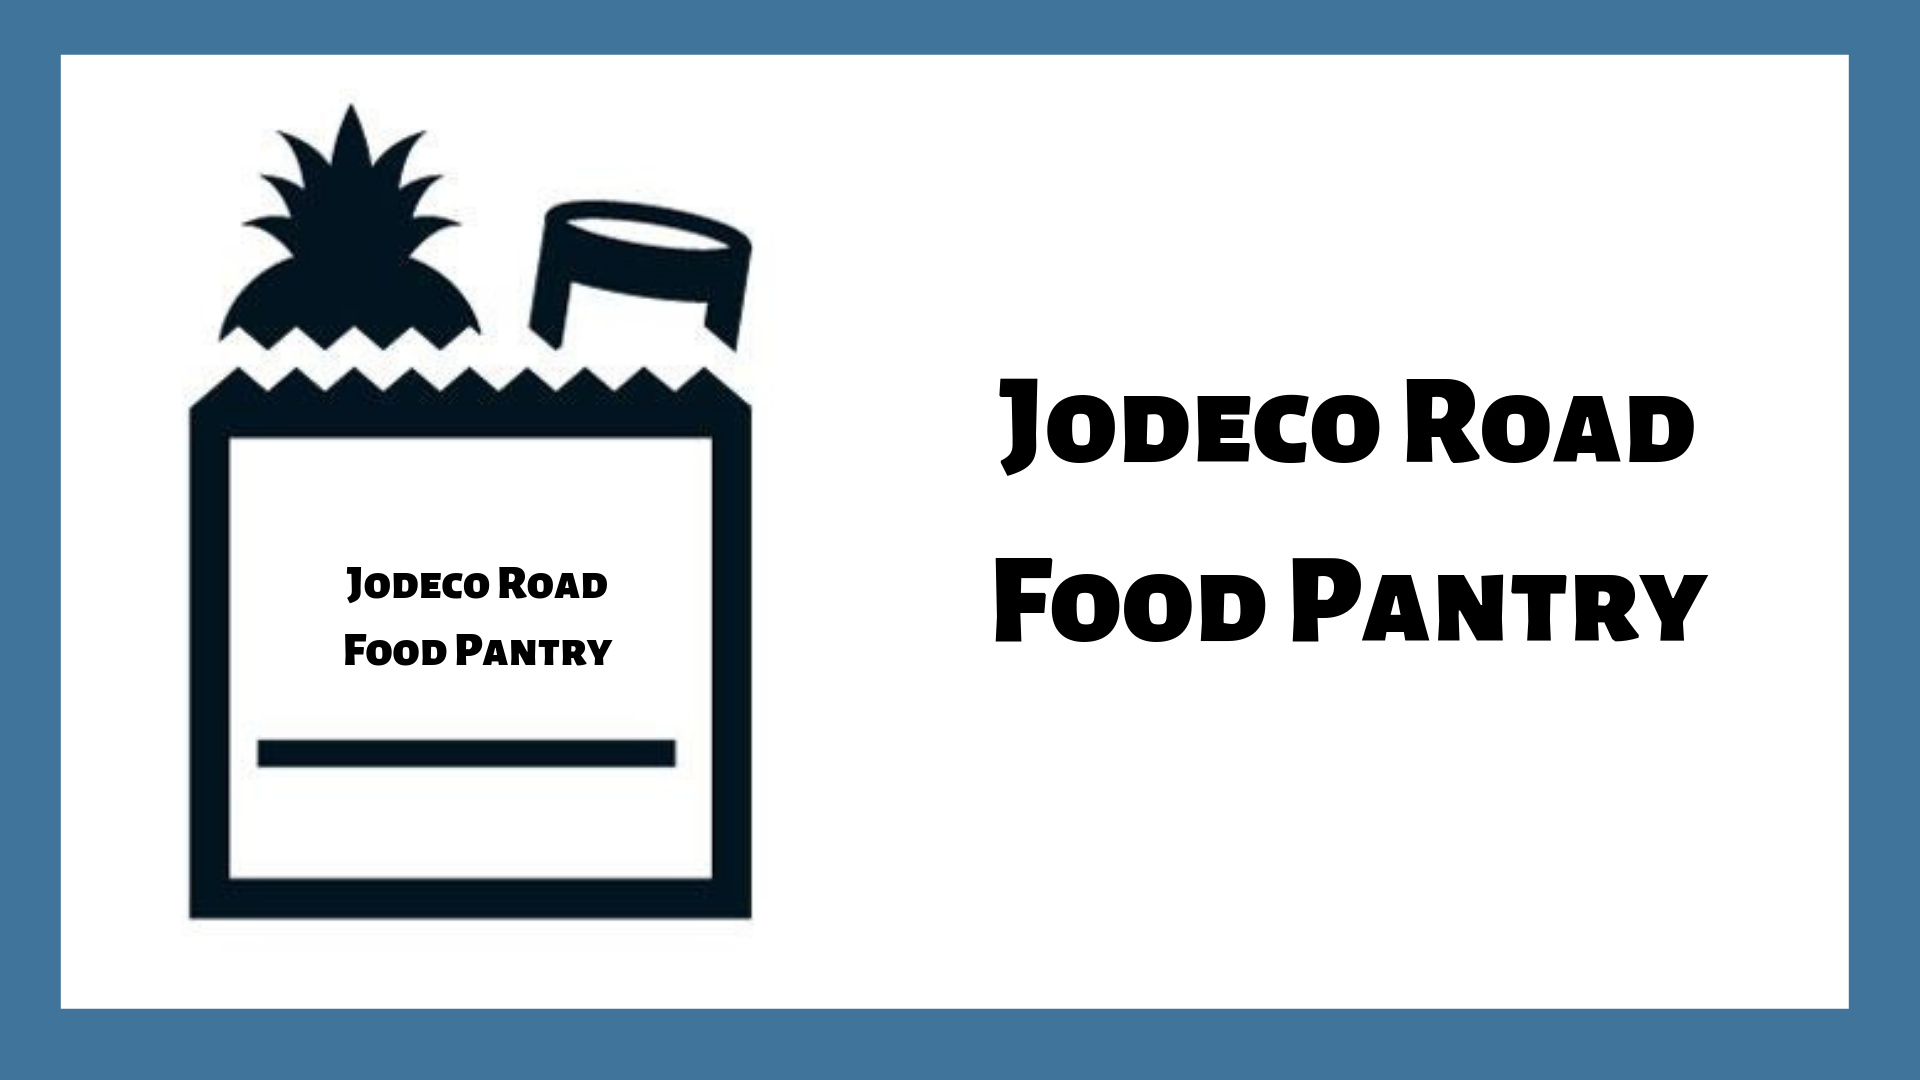 Jodeco Road Food Pantry